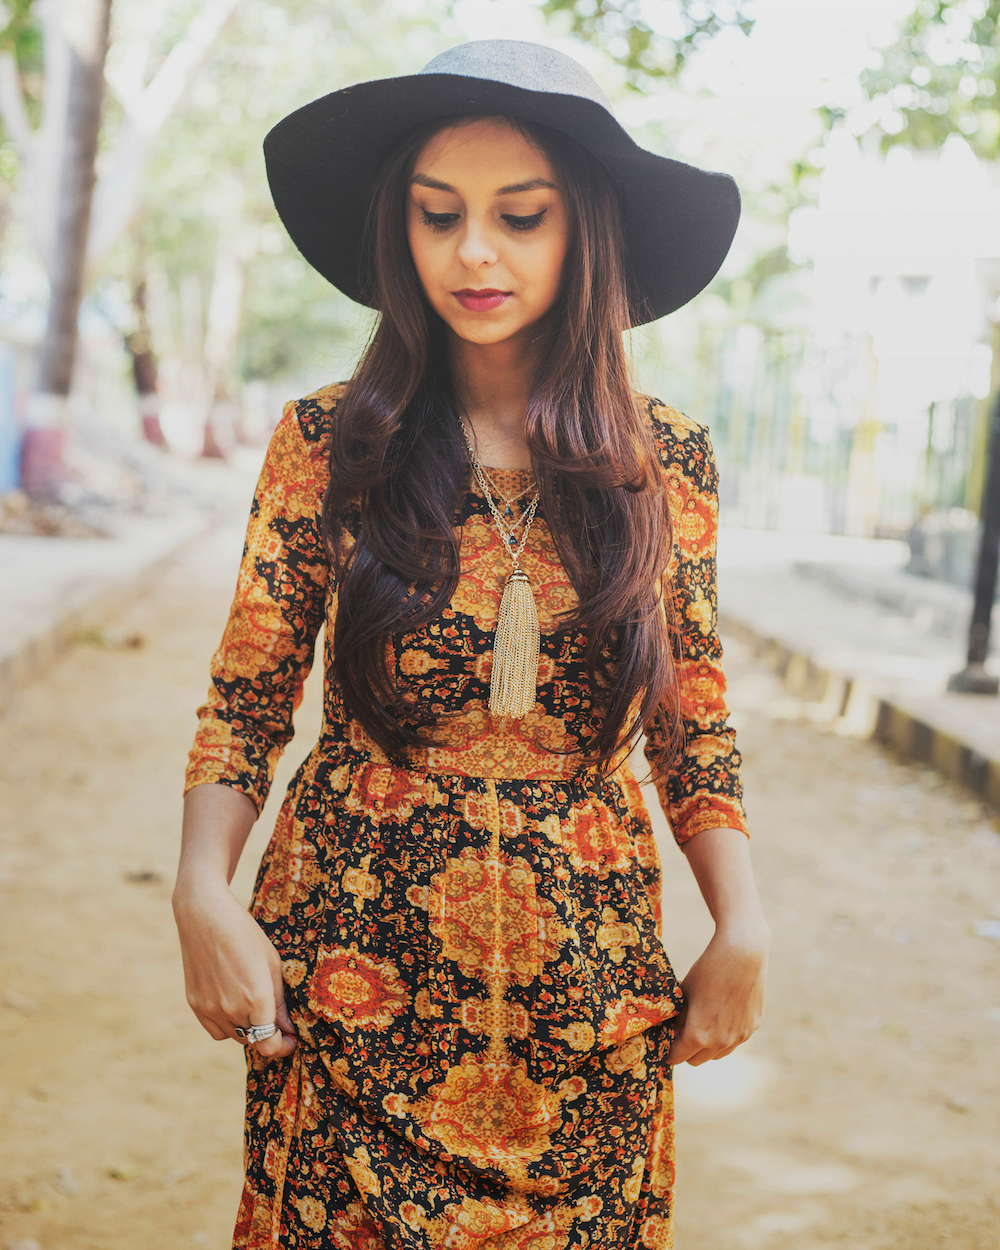 Boho At Heart Only Personal Style Photo Stories 9